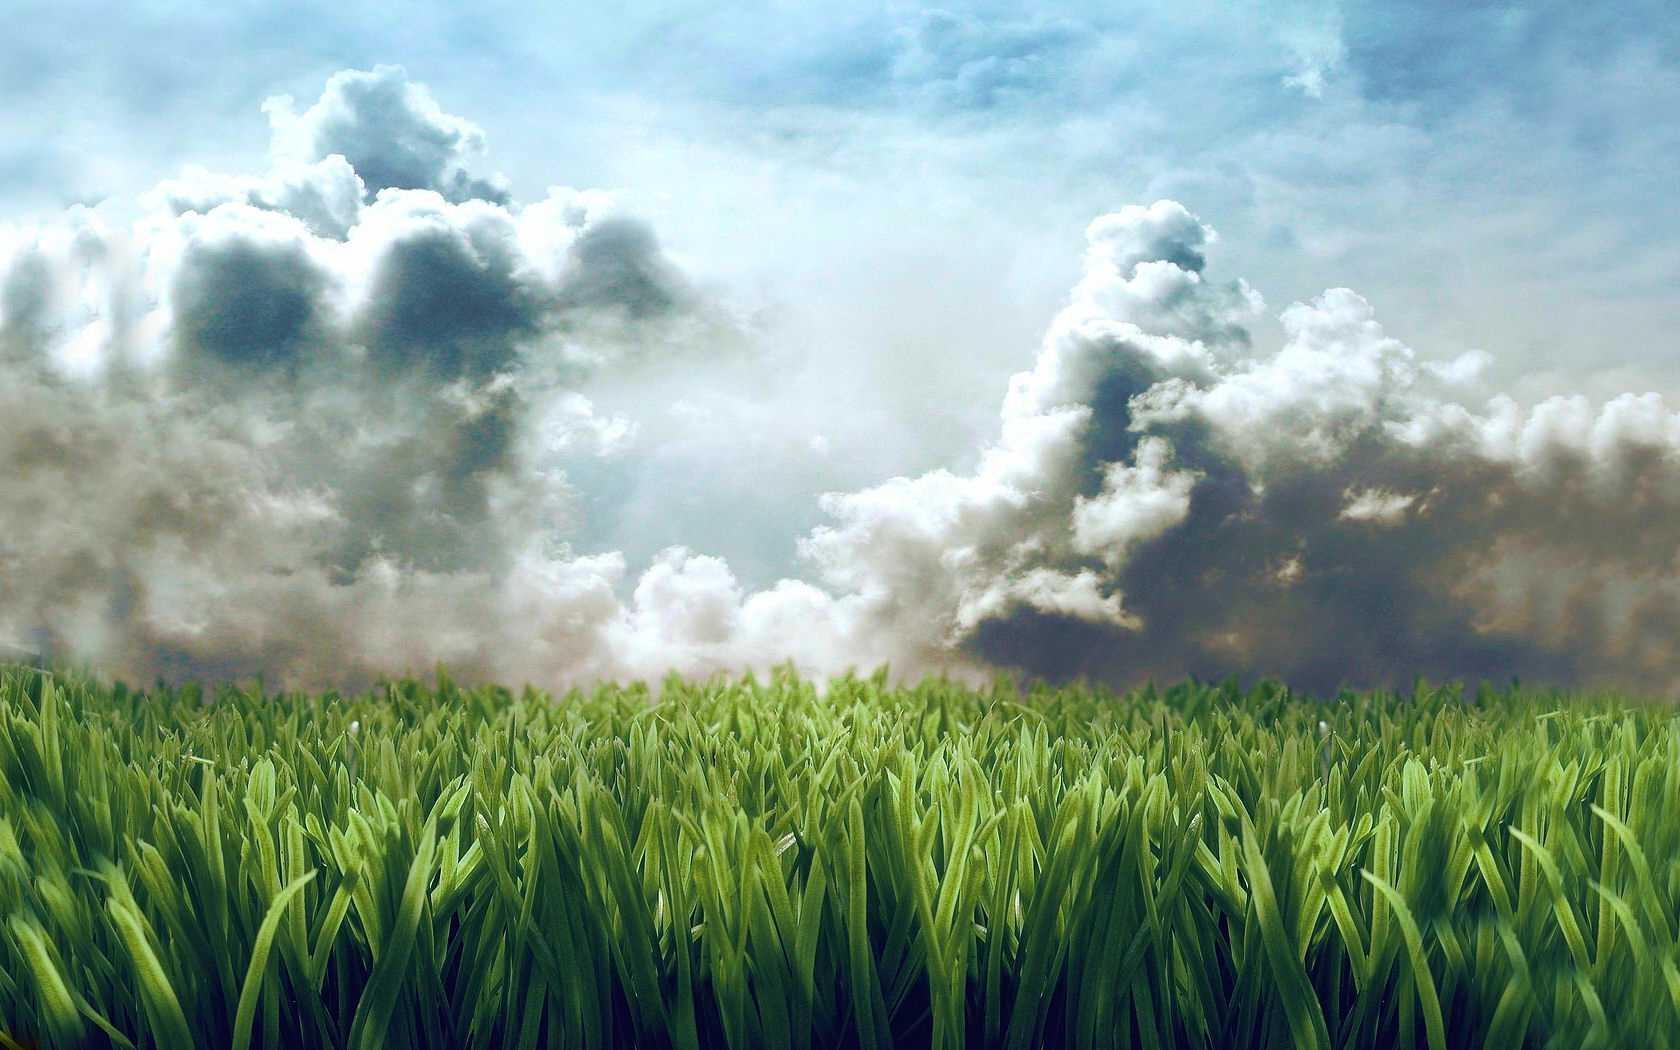 Cute Animated Moving Wallpapers For Desktop Grass Wallpaper Clouds Hd Desktop Wallpapers 4k Hd